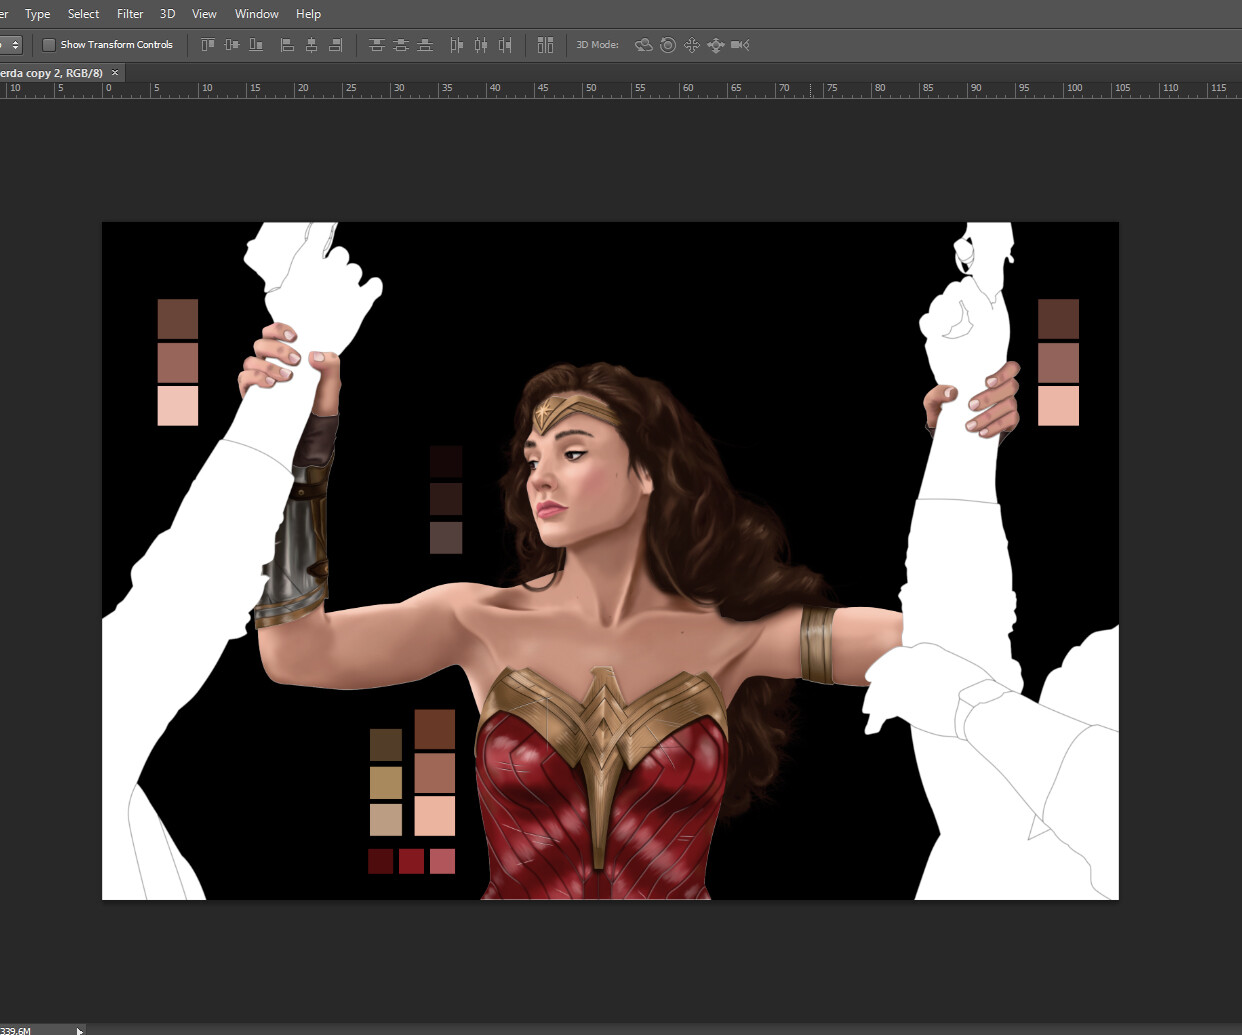 11 hours only to finish Wonder Woman